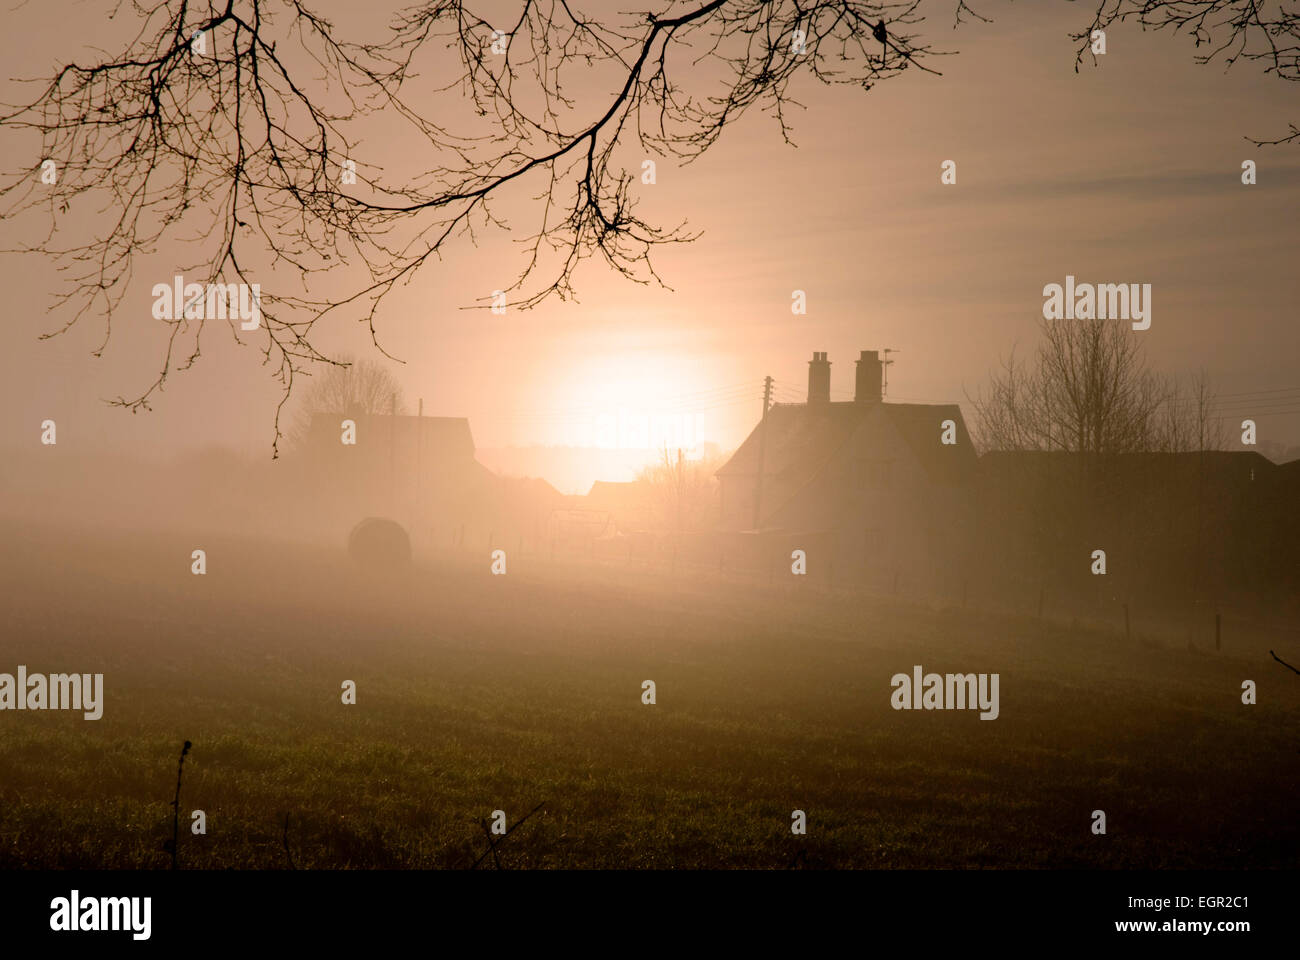 Dawn - rising sun shrouded by mist - farm buildings in dark silhouette against an orange tinted sky - promise of - Stock Image